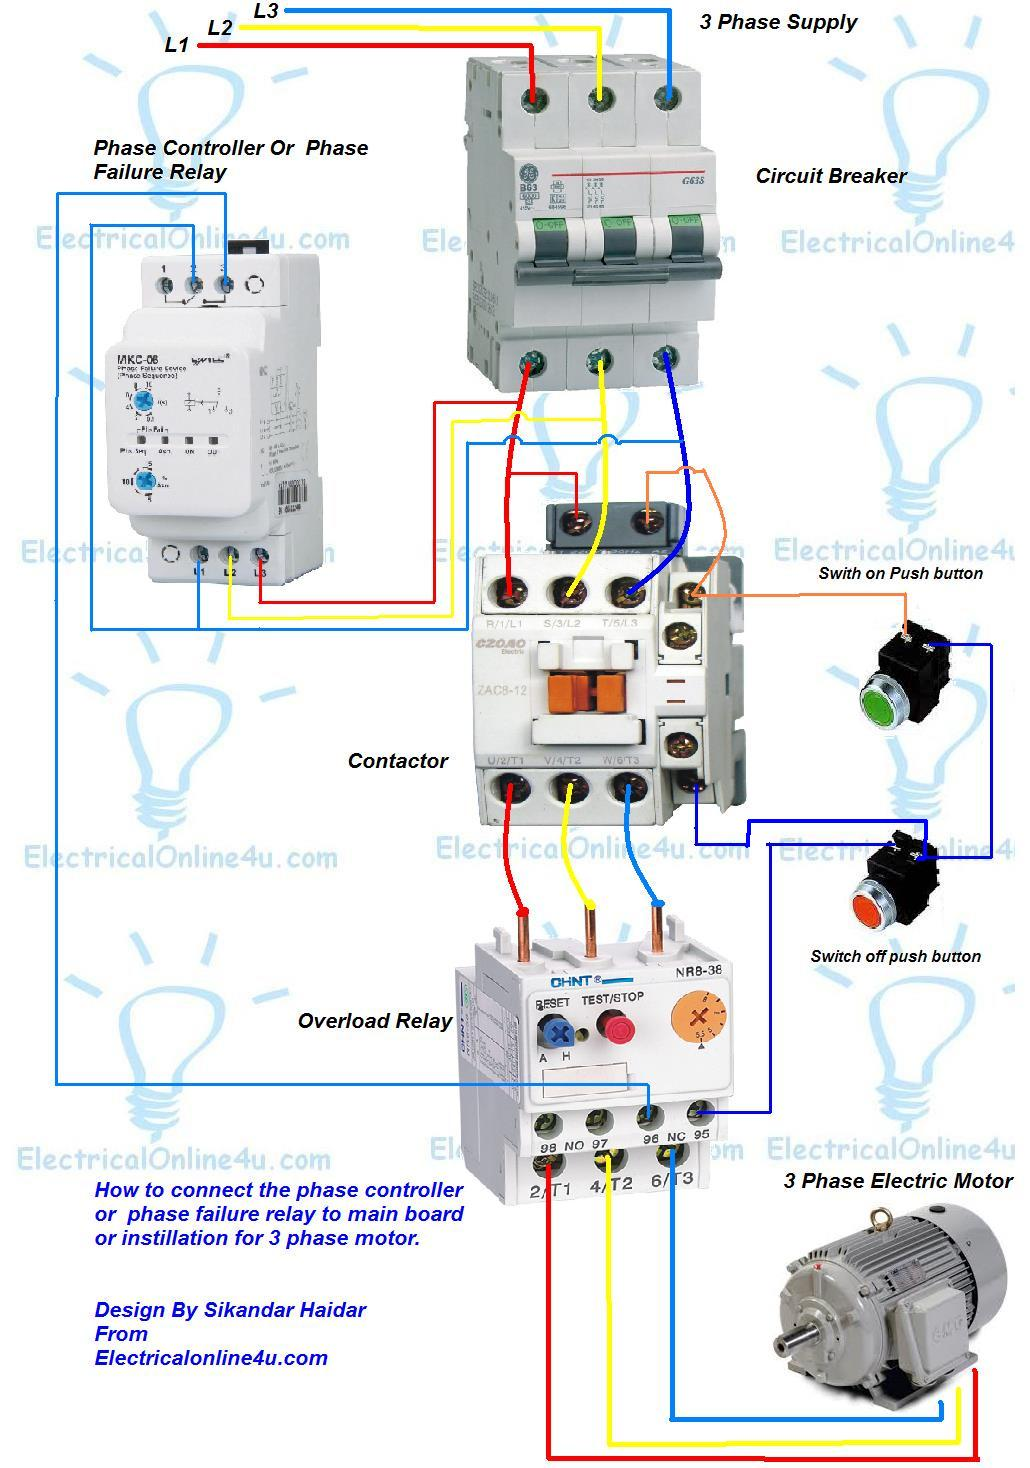 Phase%2Bfailure%2Brelay%2B %2Bphase%2Bcontroller%2Binstilaion%2Bin%2B3%2Bphase%2BMain%2Bboard%2Bor%2Bfor%2B3%2Bphase%2Bmotor phase controller wiring phase failure relay diagram electrical 3 phase lighting wiring diagram at gsmx.co